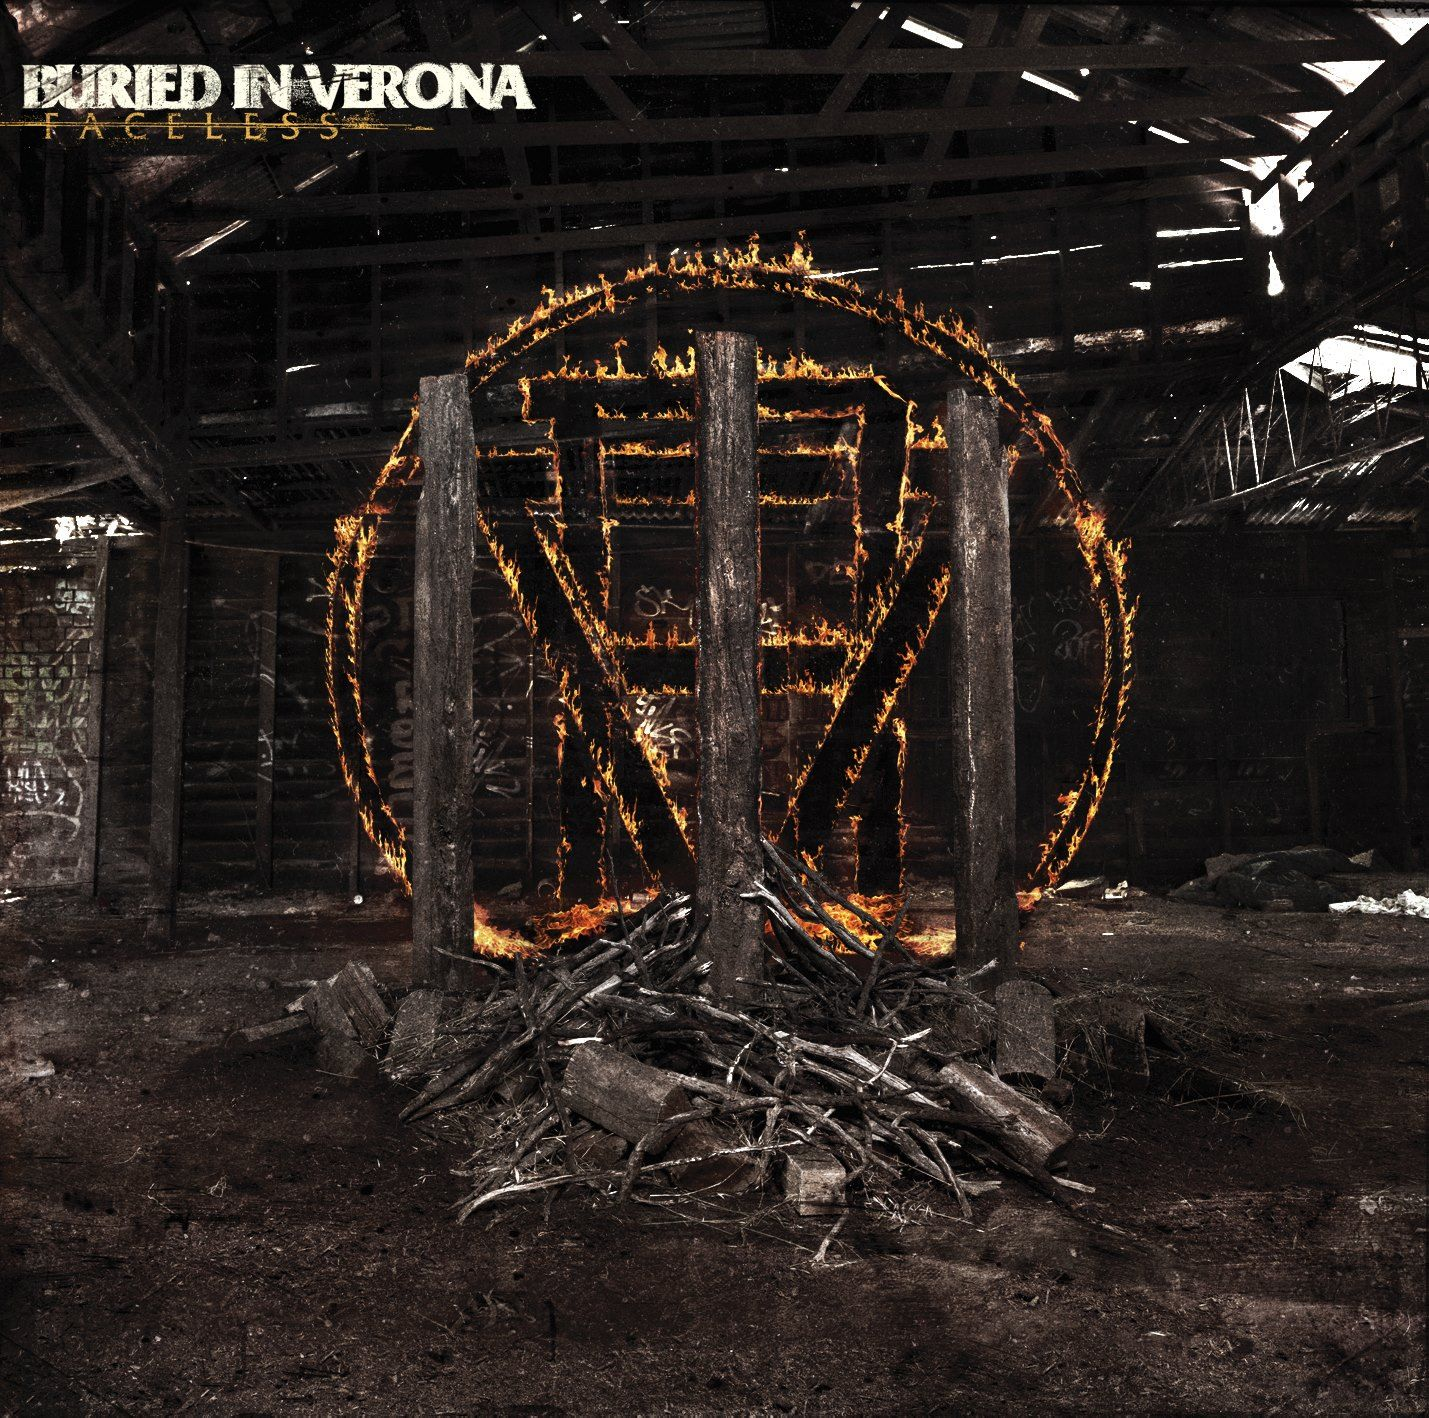 Buried In Verona - Faceless album cover